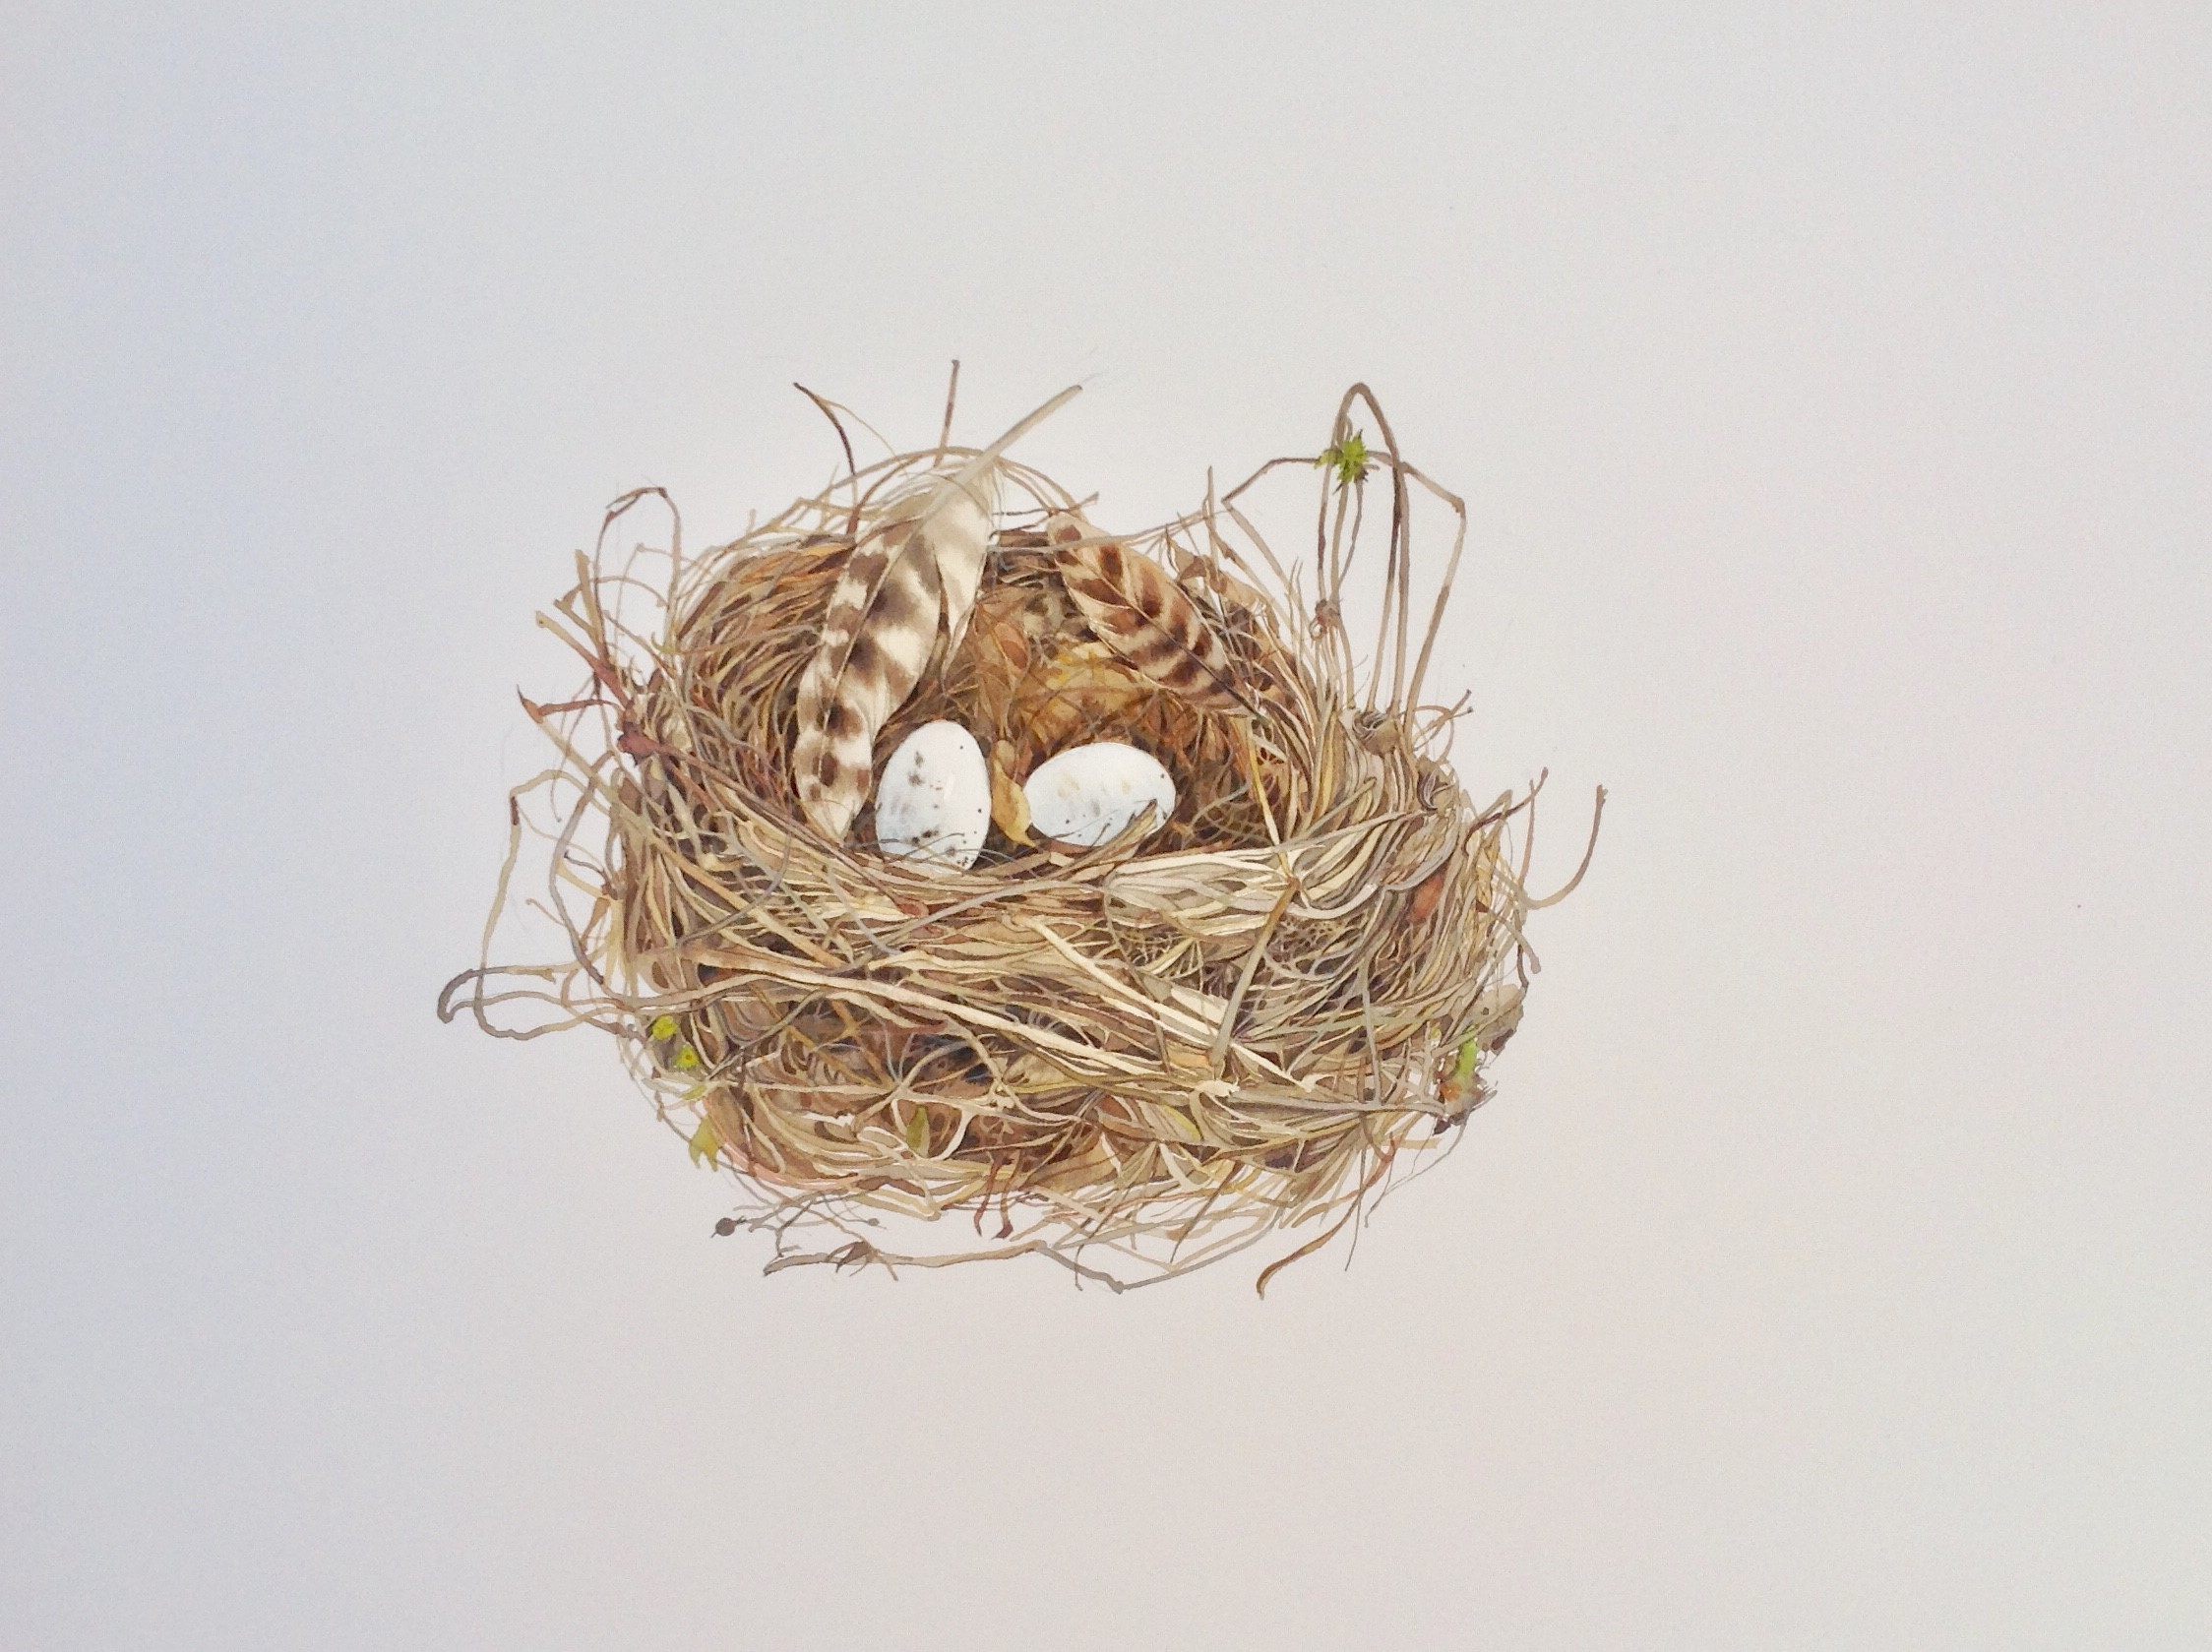 Nest with Feather 2  watercolour  54 x 54cm  £550 framed